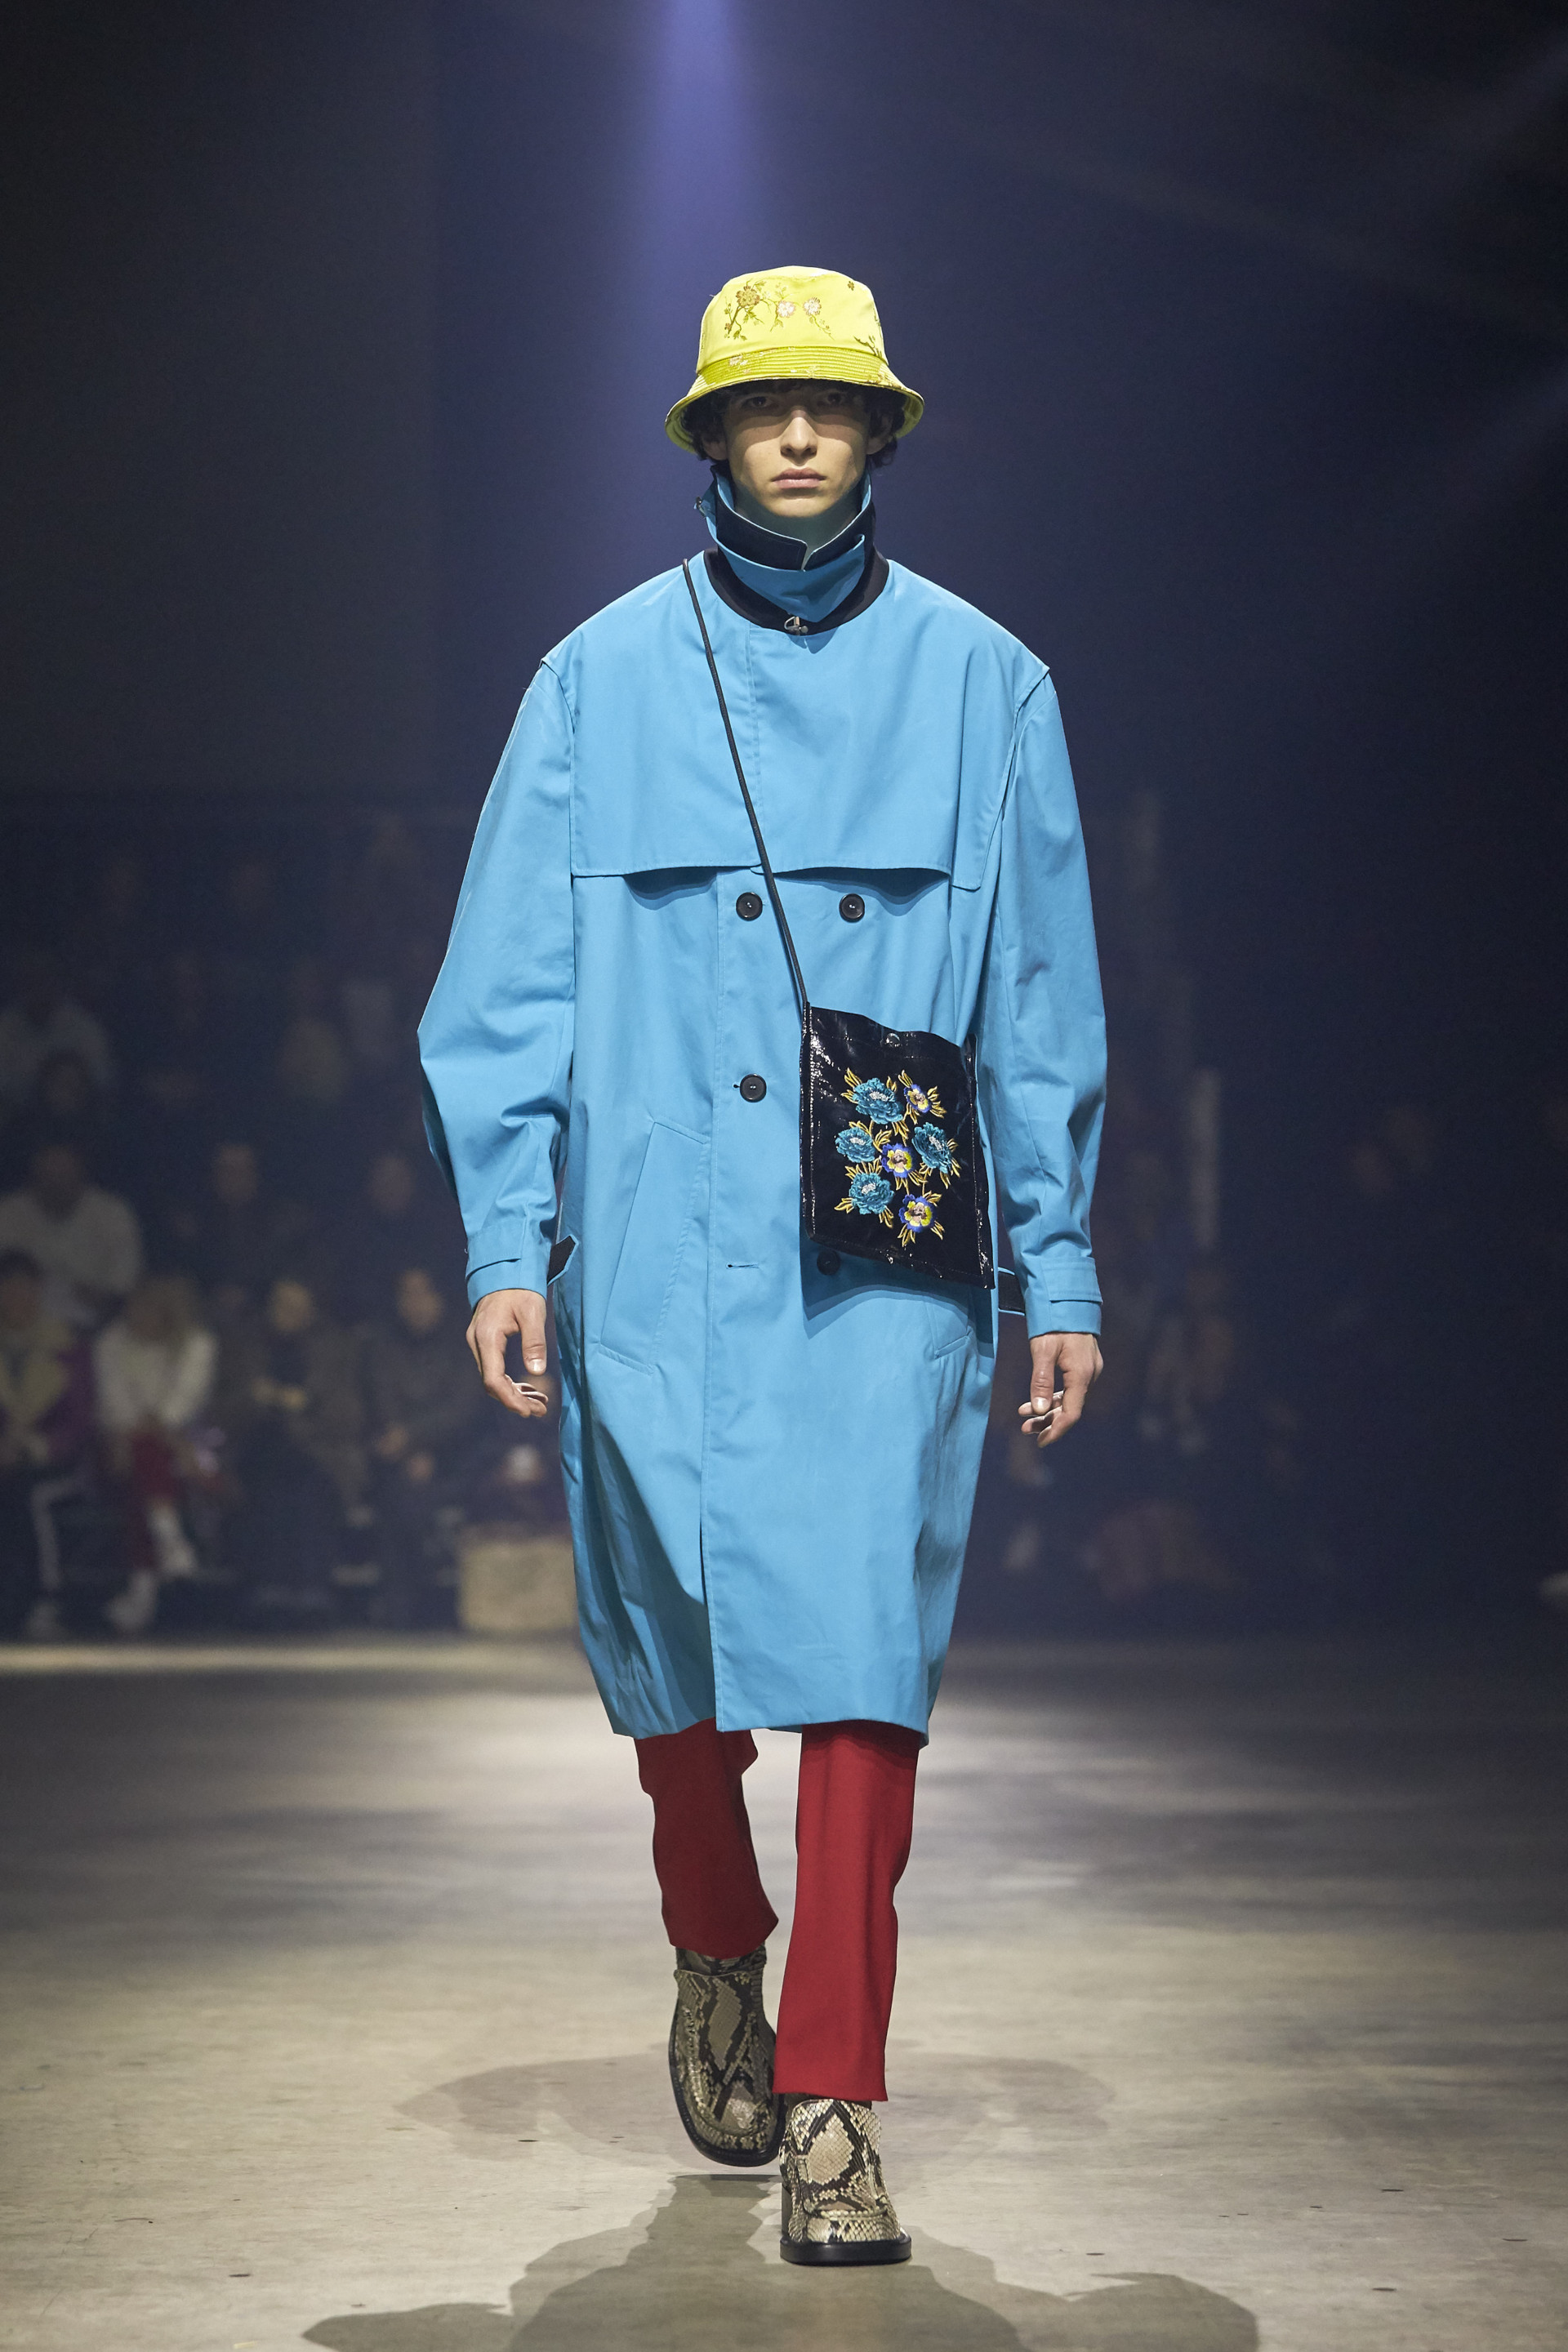 Percevalties Kenzo Fall Winter 2018